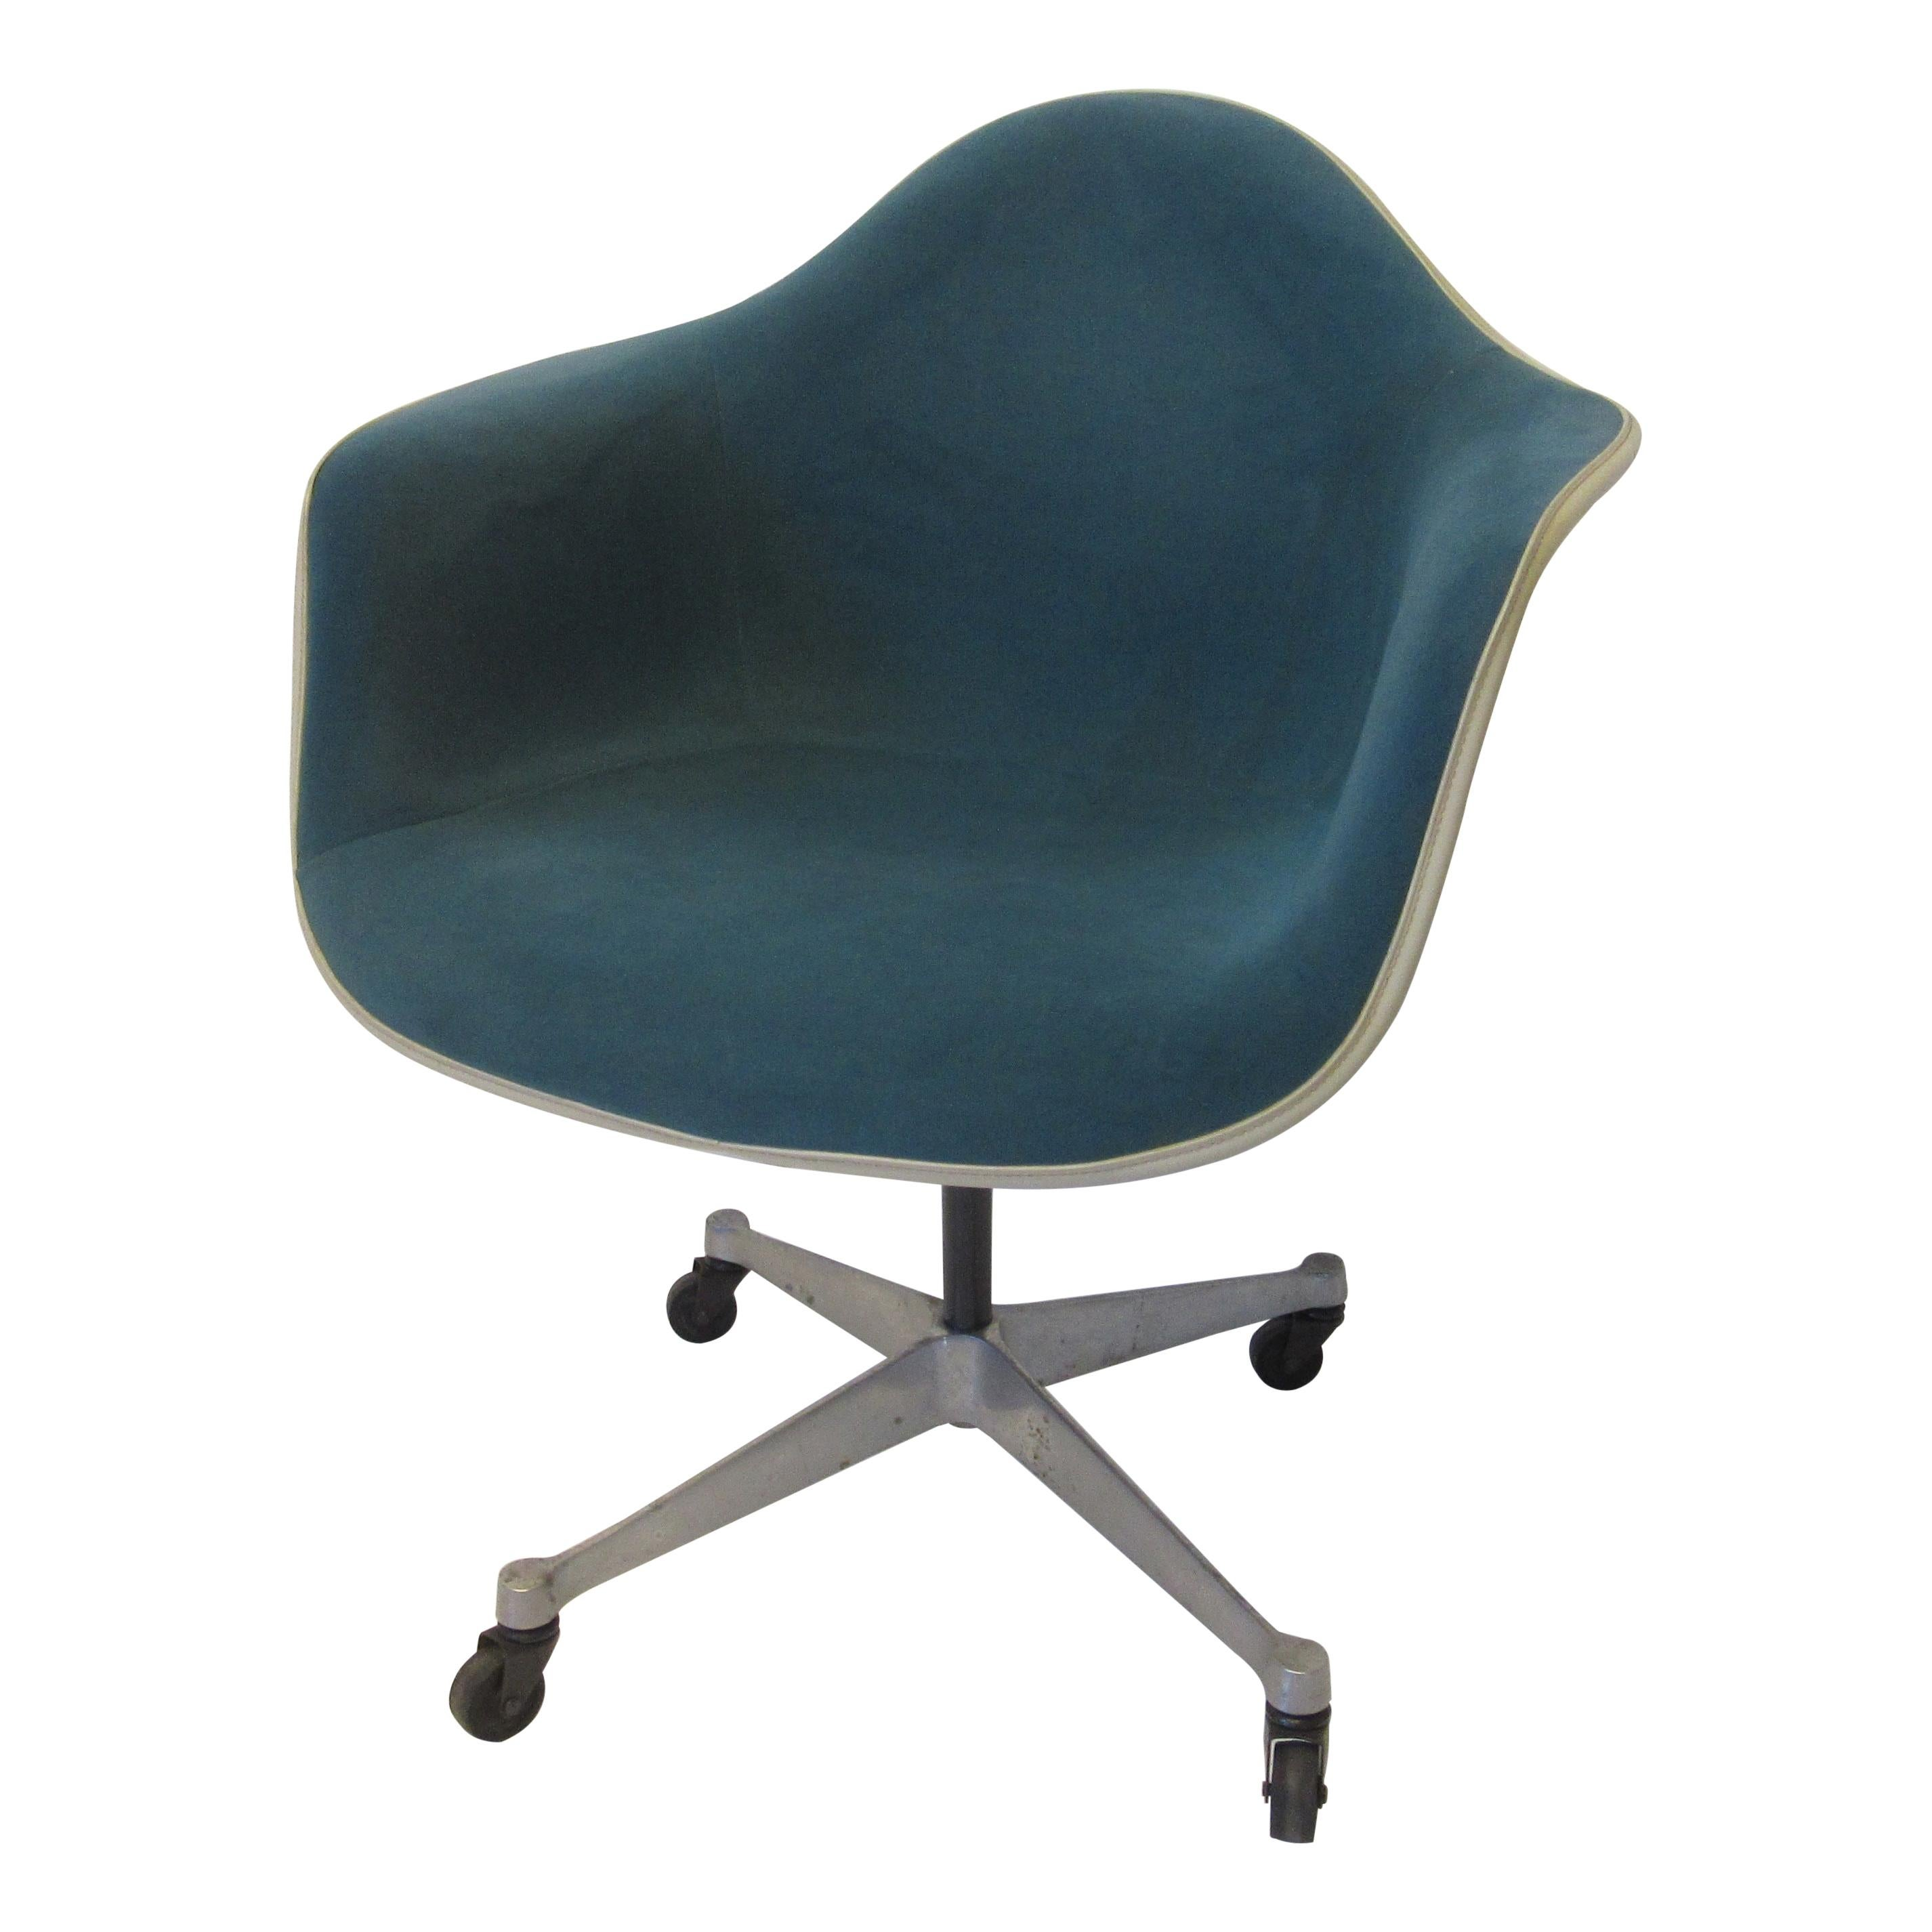 Eames Arm Shell Desk Chair by Herman Miller